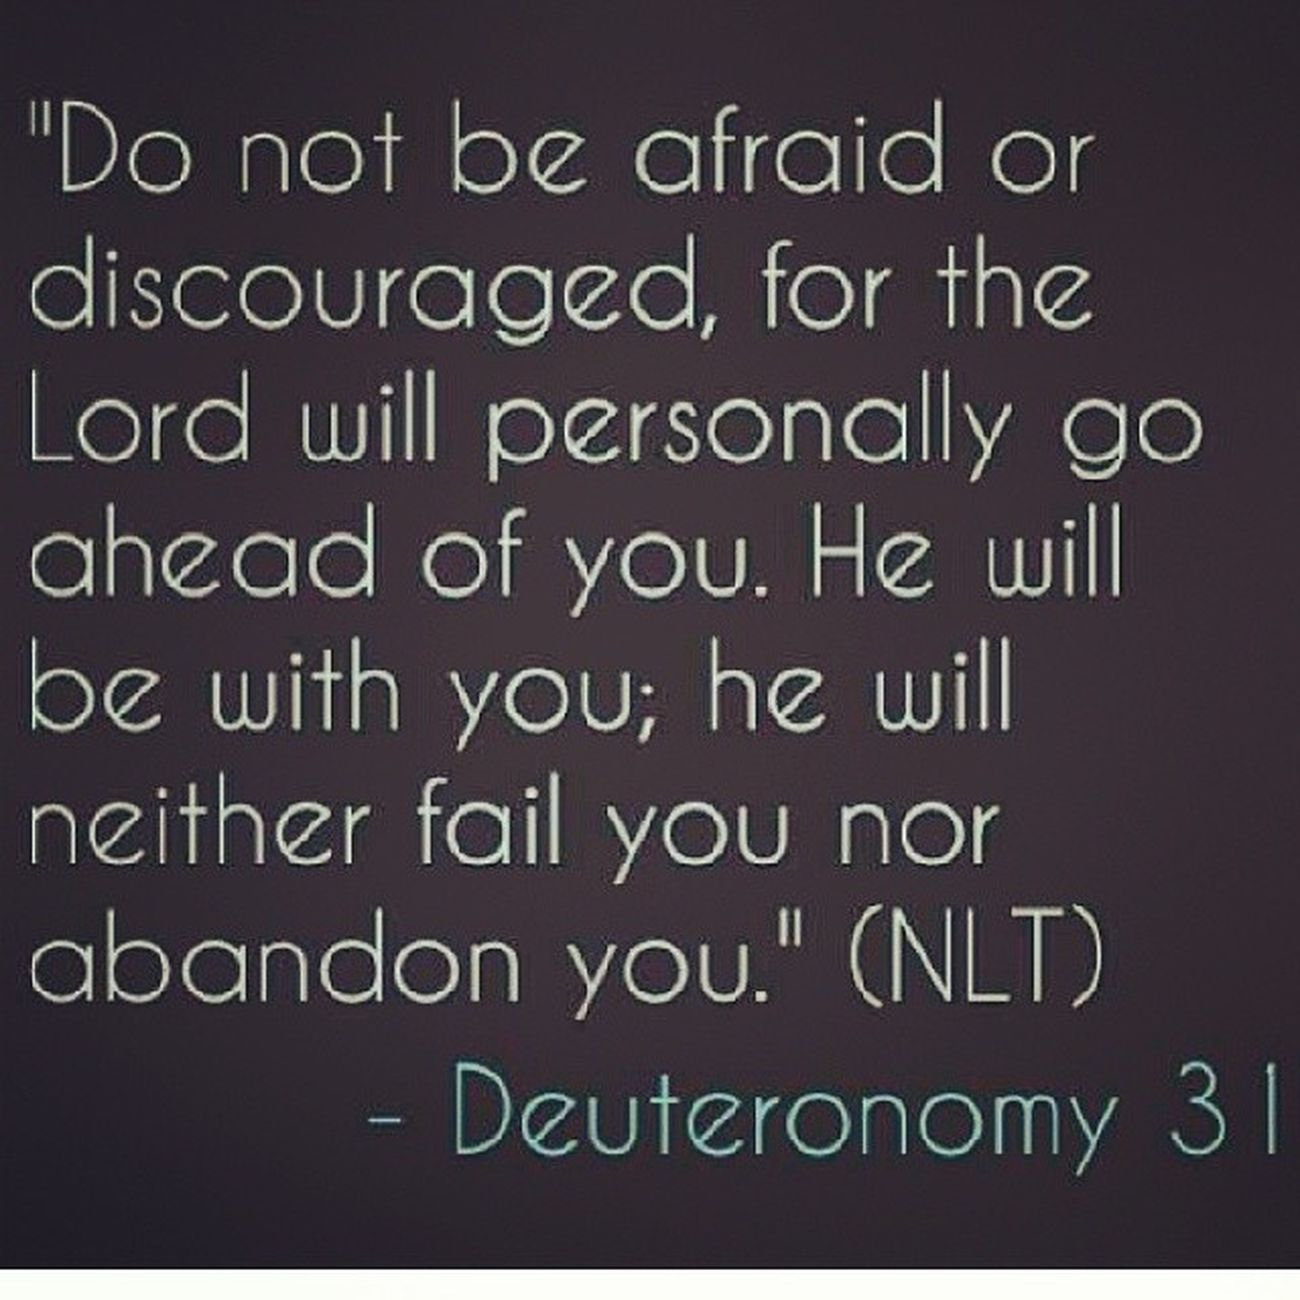 God is with you every step of the way! DontBeDiscouraged